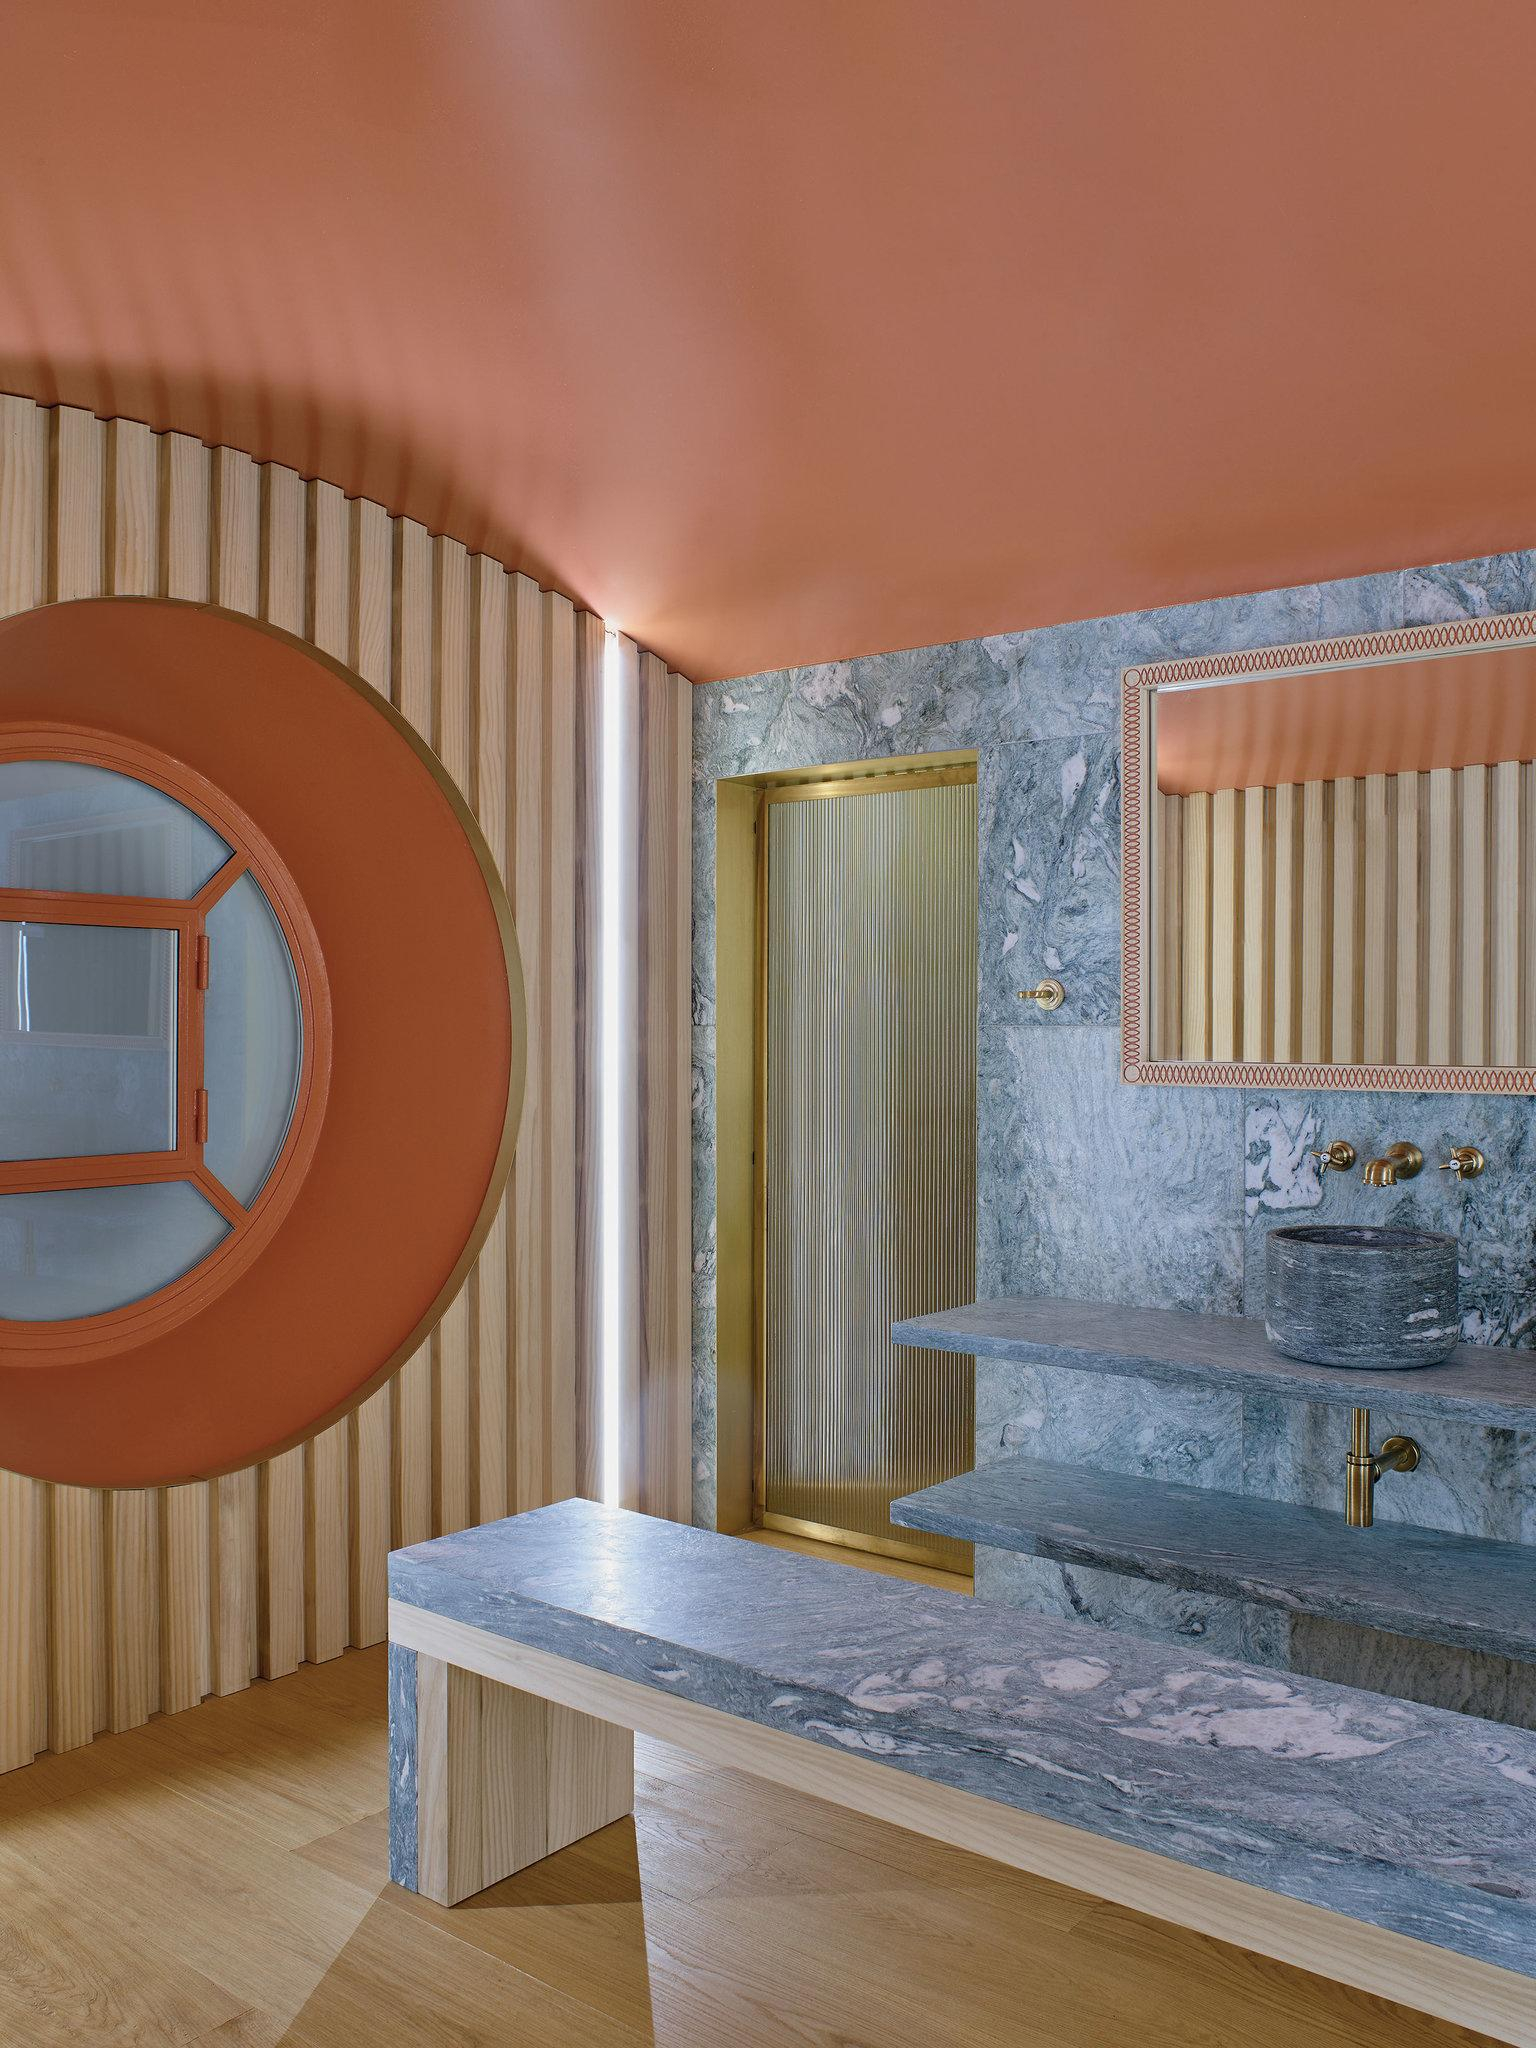 A nautical bathroom that leads to the indoor pool, Studio Luca Guadagnino. Photo: Henry Bourne